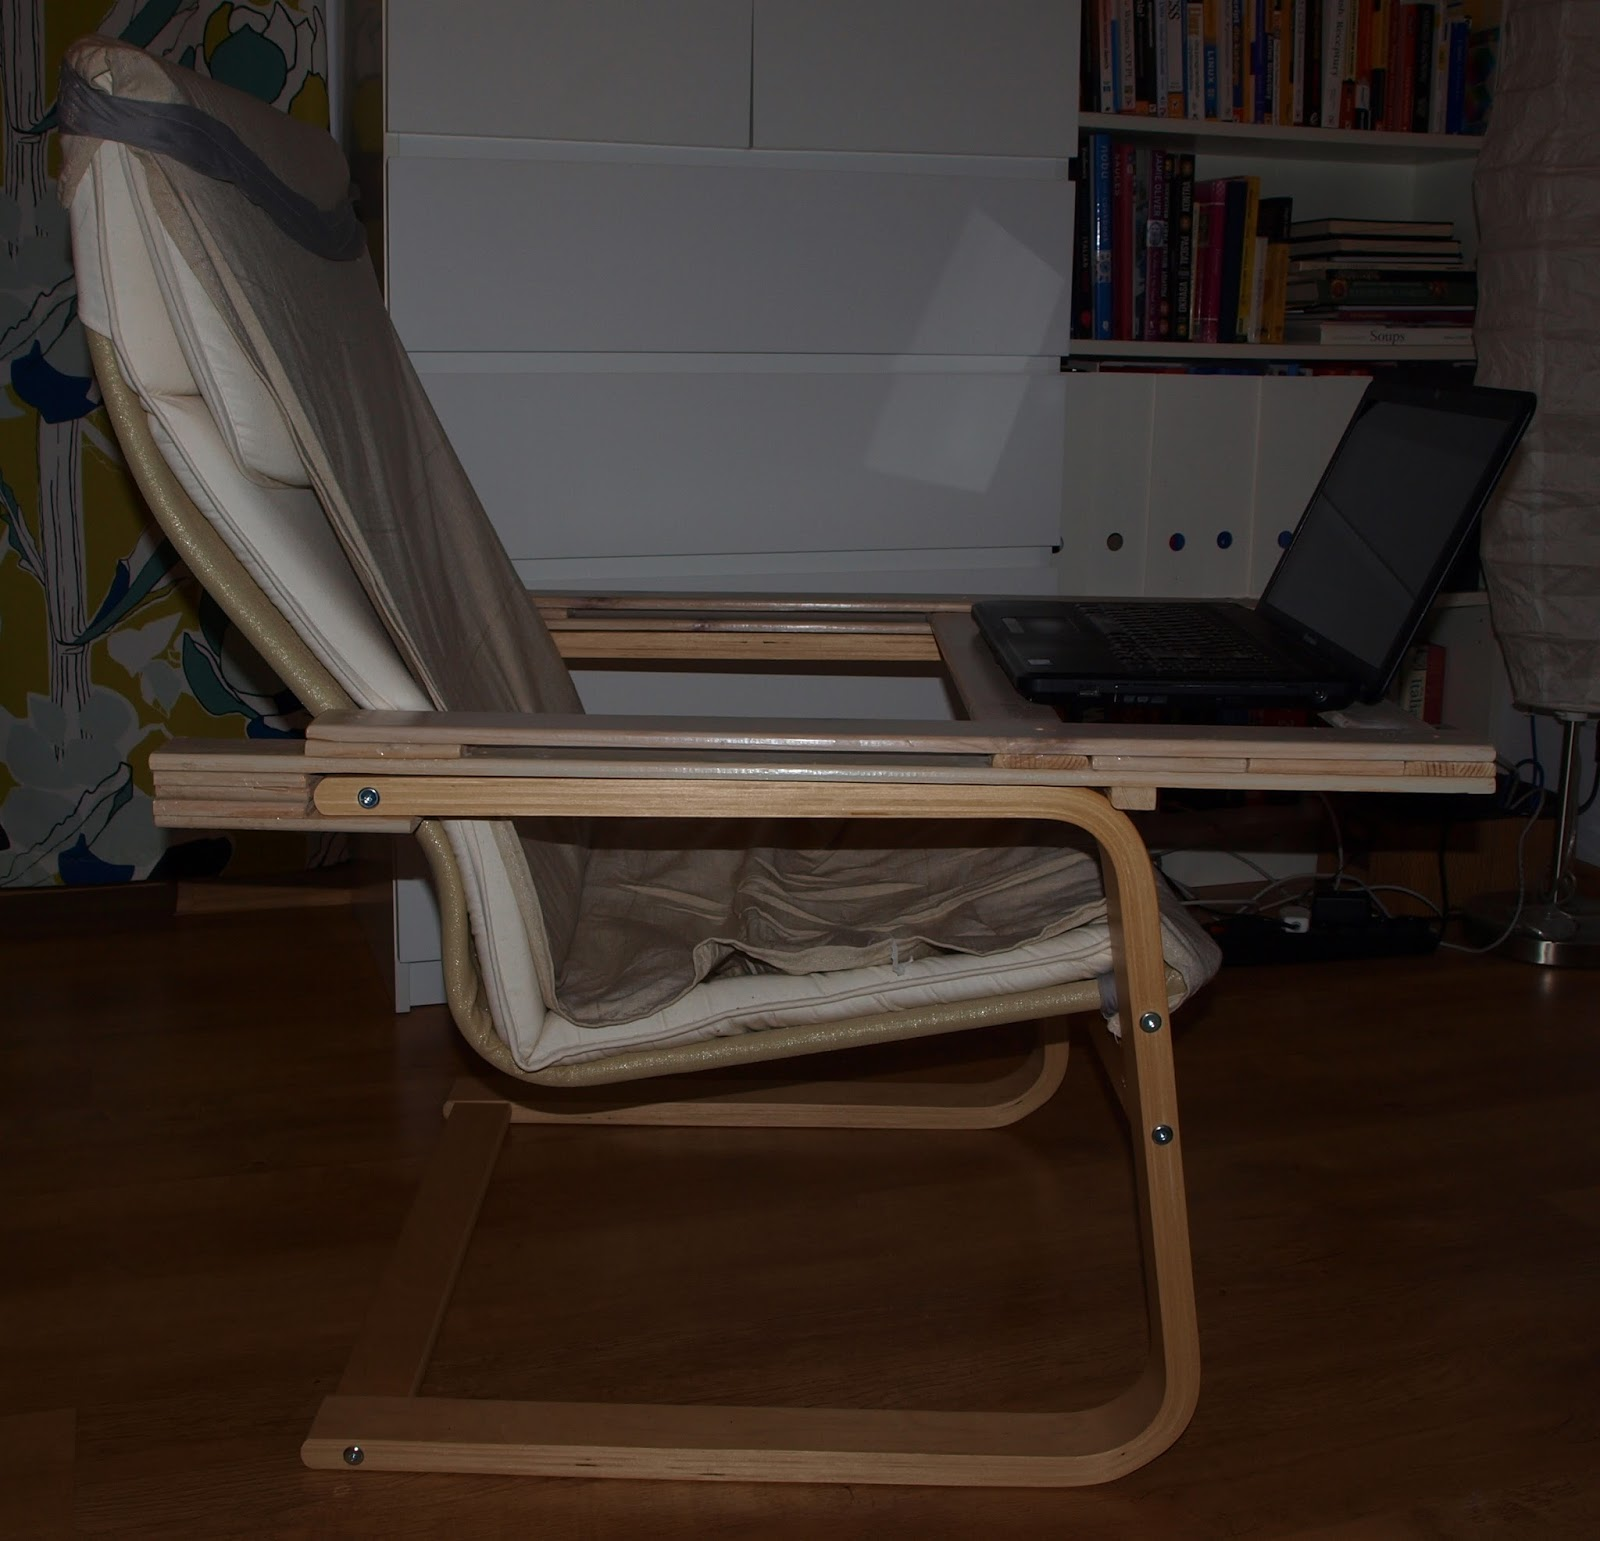 fix-it-or-hack-it: Laptop holder for armchair PELLO from ikea